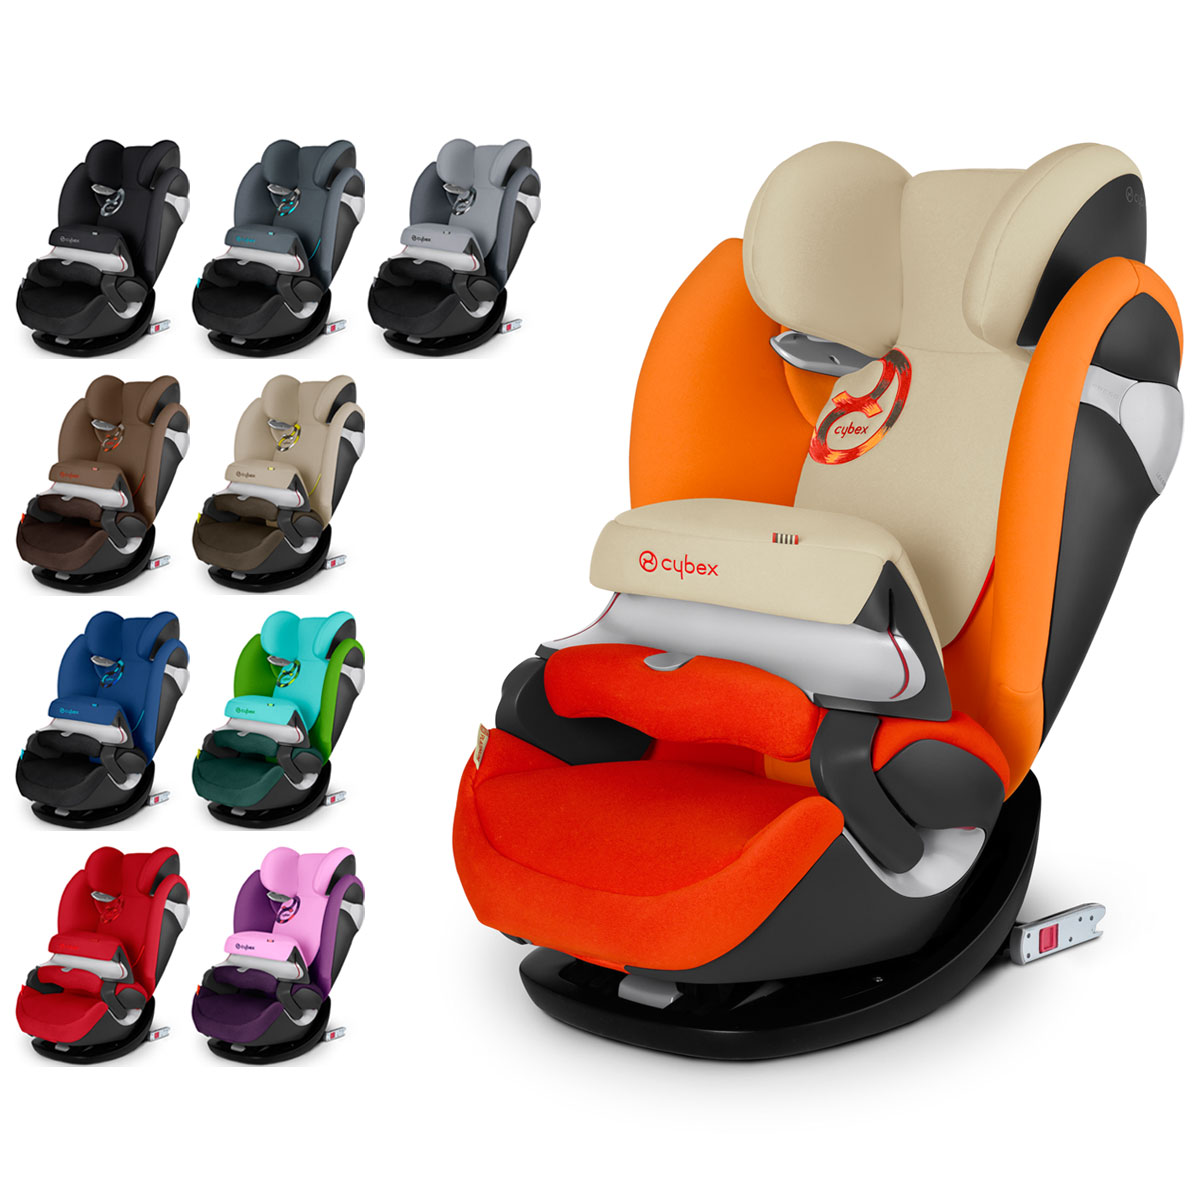 cybex pallas m fix child seat car seat goldline design 2015 color selectable ebay. Black Bedroom Furniture Sets. Home Design Ideas